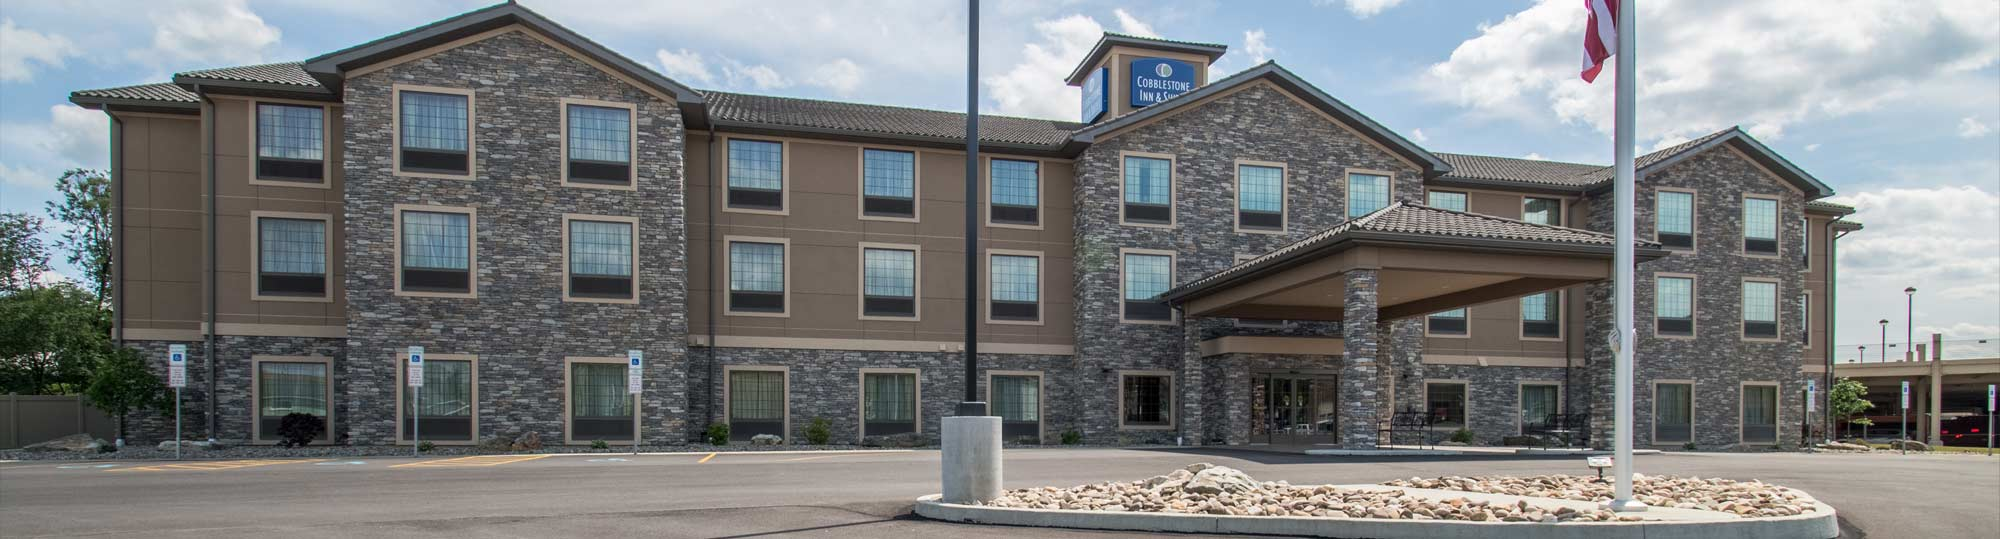 Cobblestone Inn And Suites St Marys